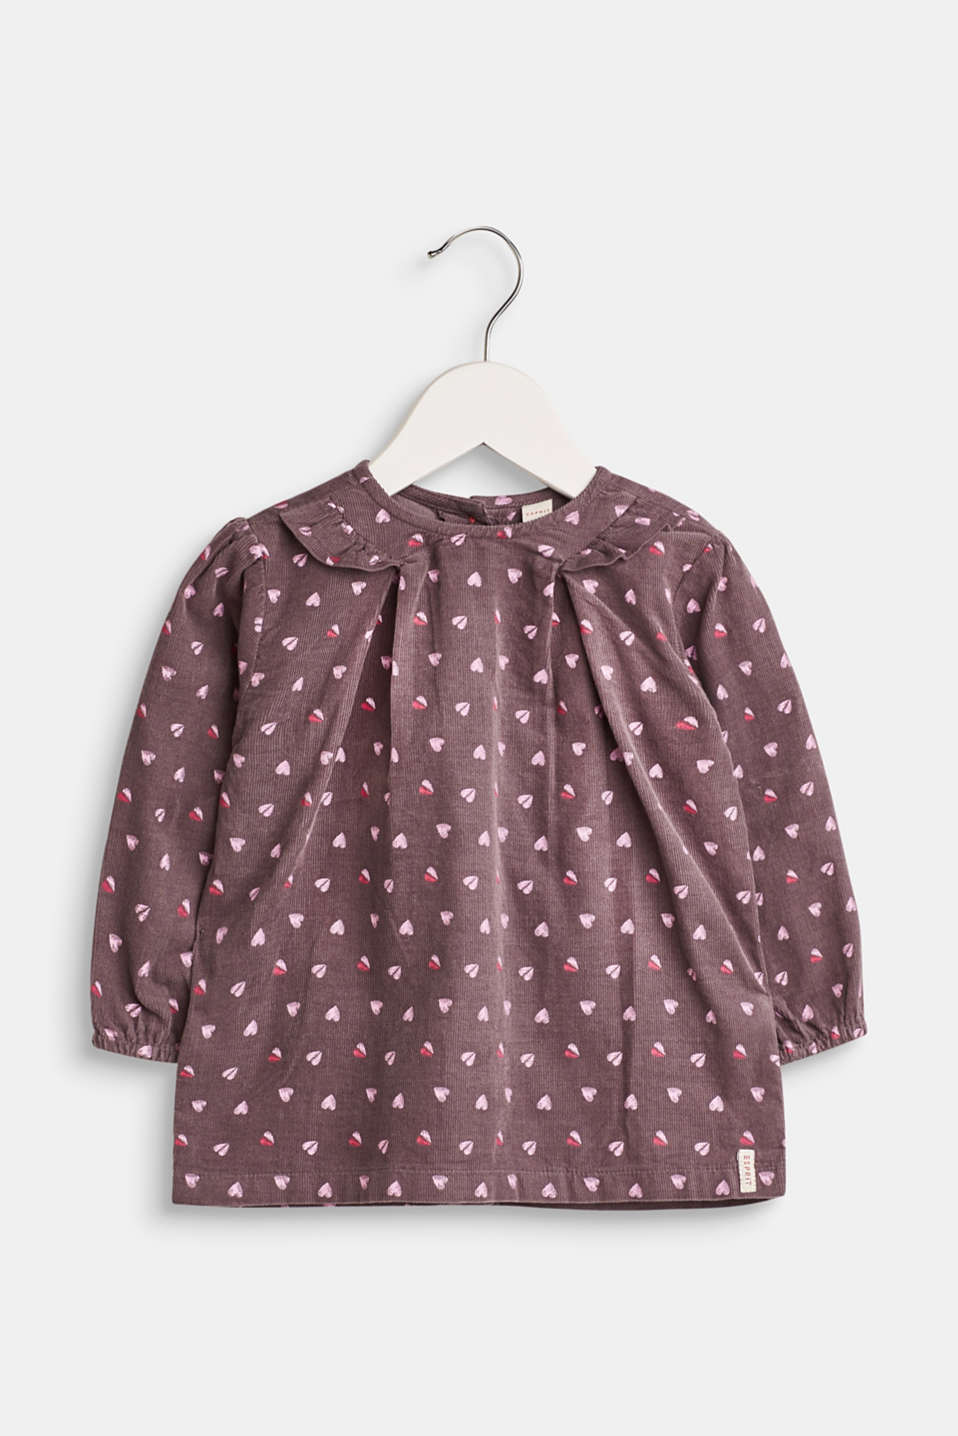 Esprit - Fine-cord blouse with a heart print, 100% cotton